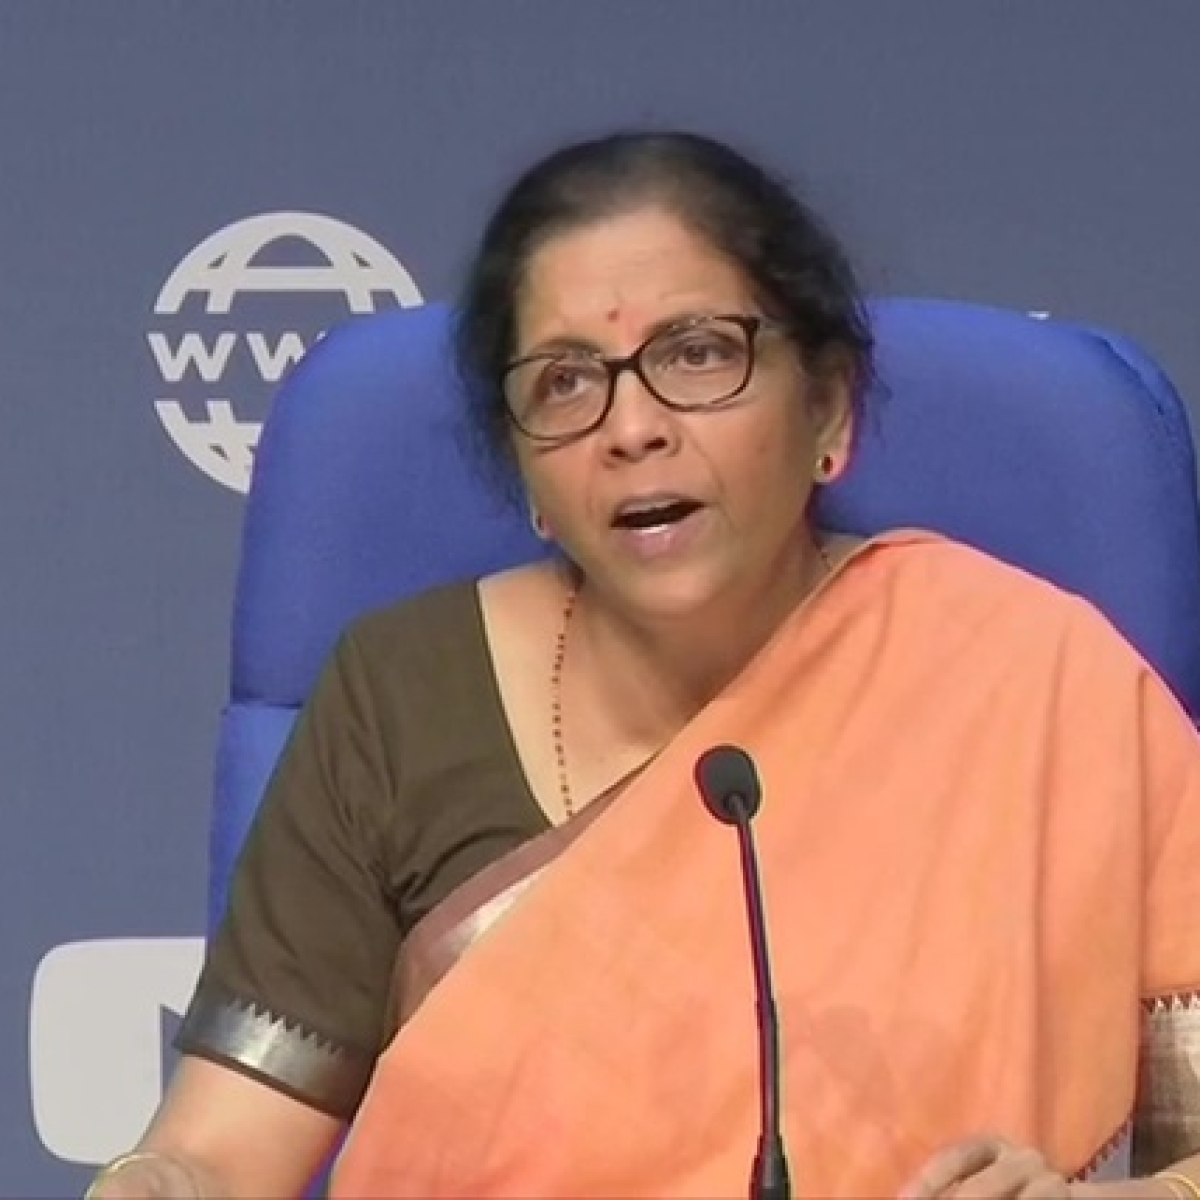 Coronavirus outbreak: FM Nirmala Sitharaman announces relief package worth Rs 1.7 lakh crore